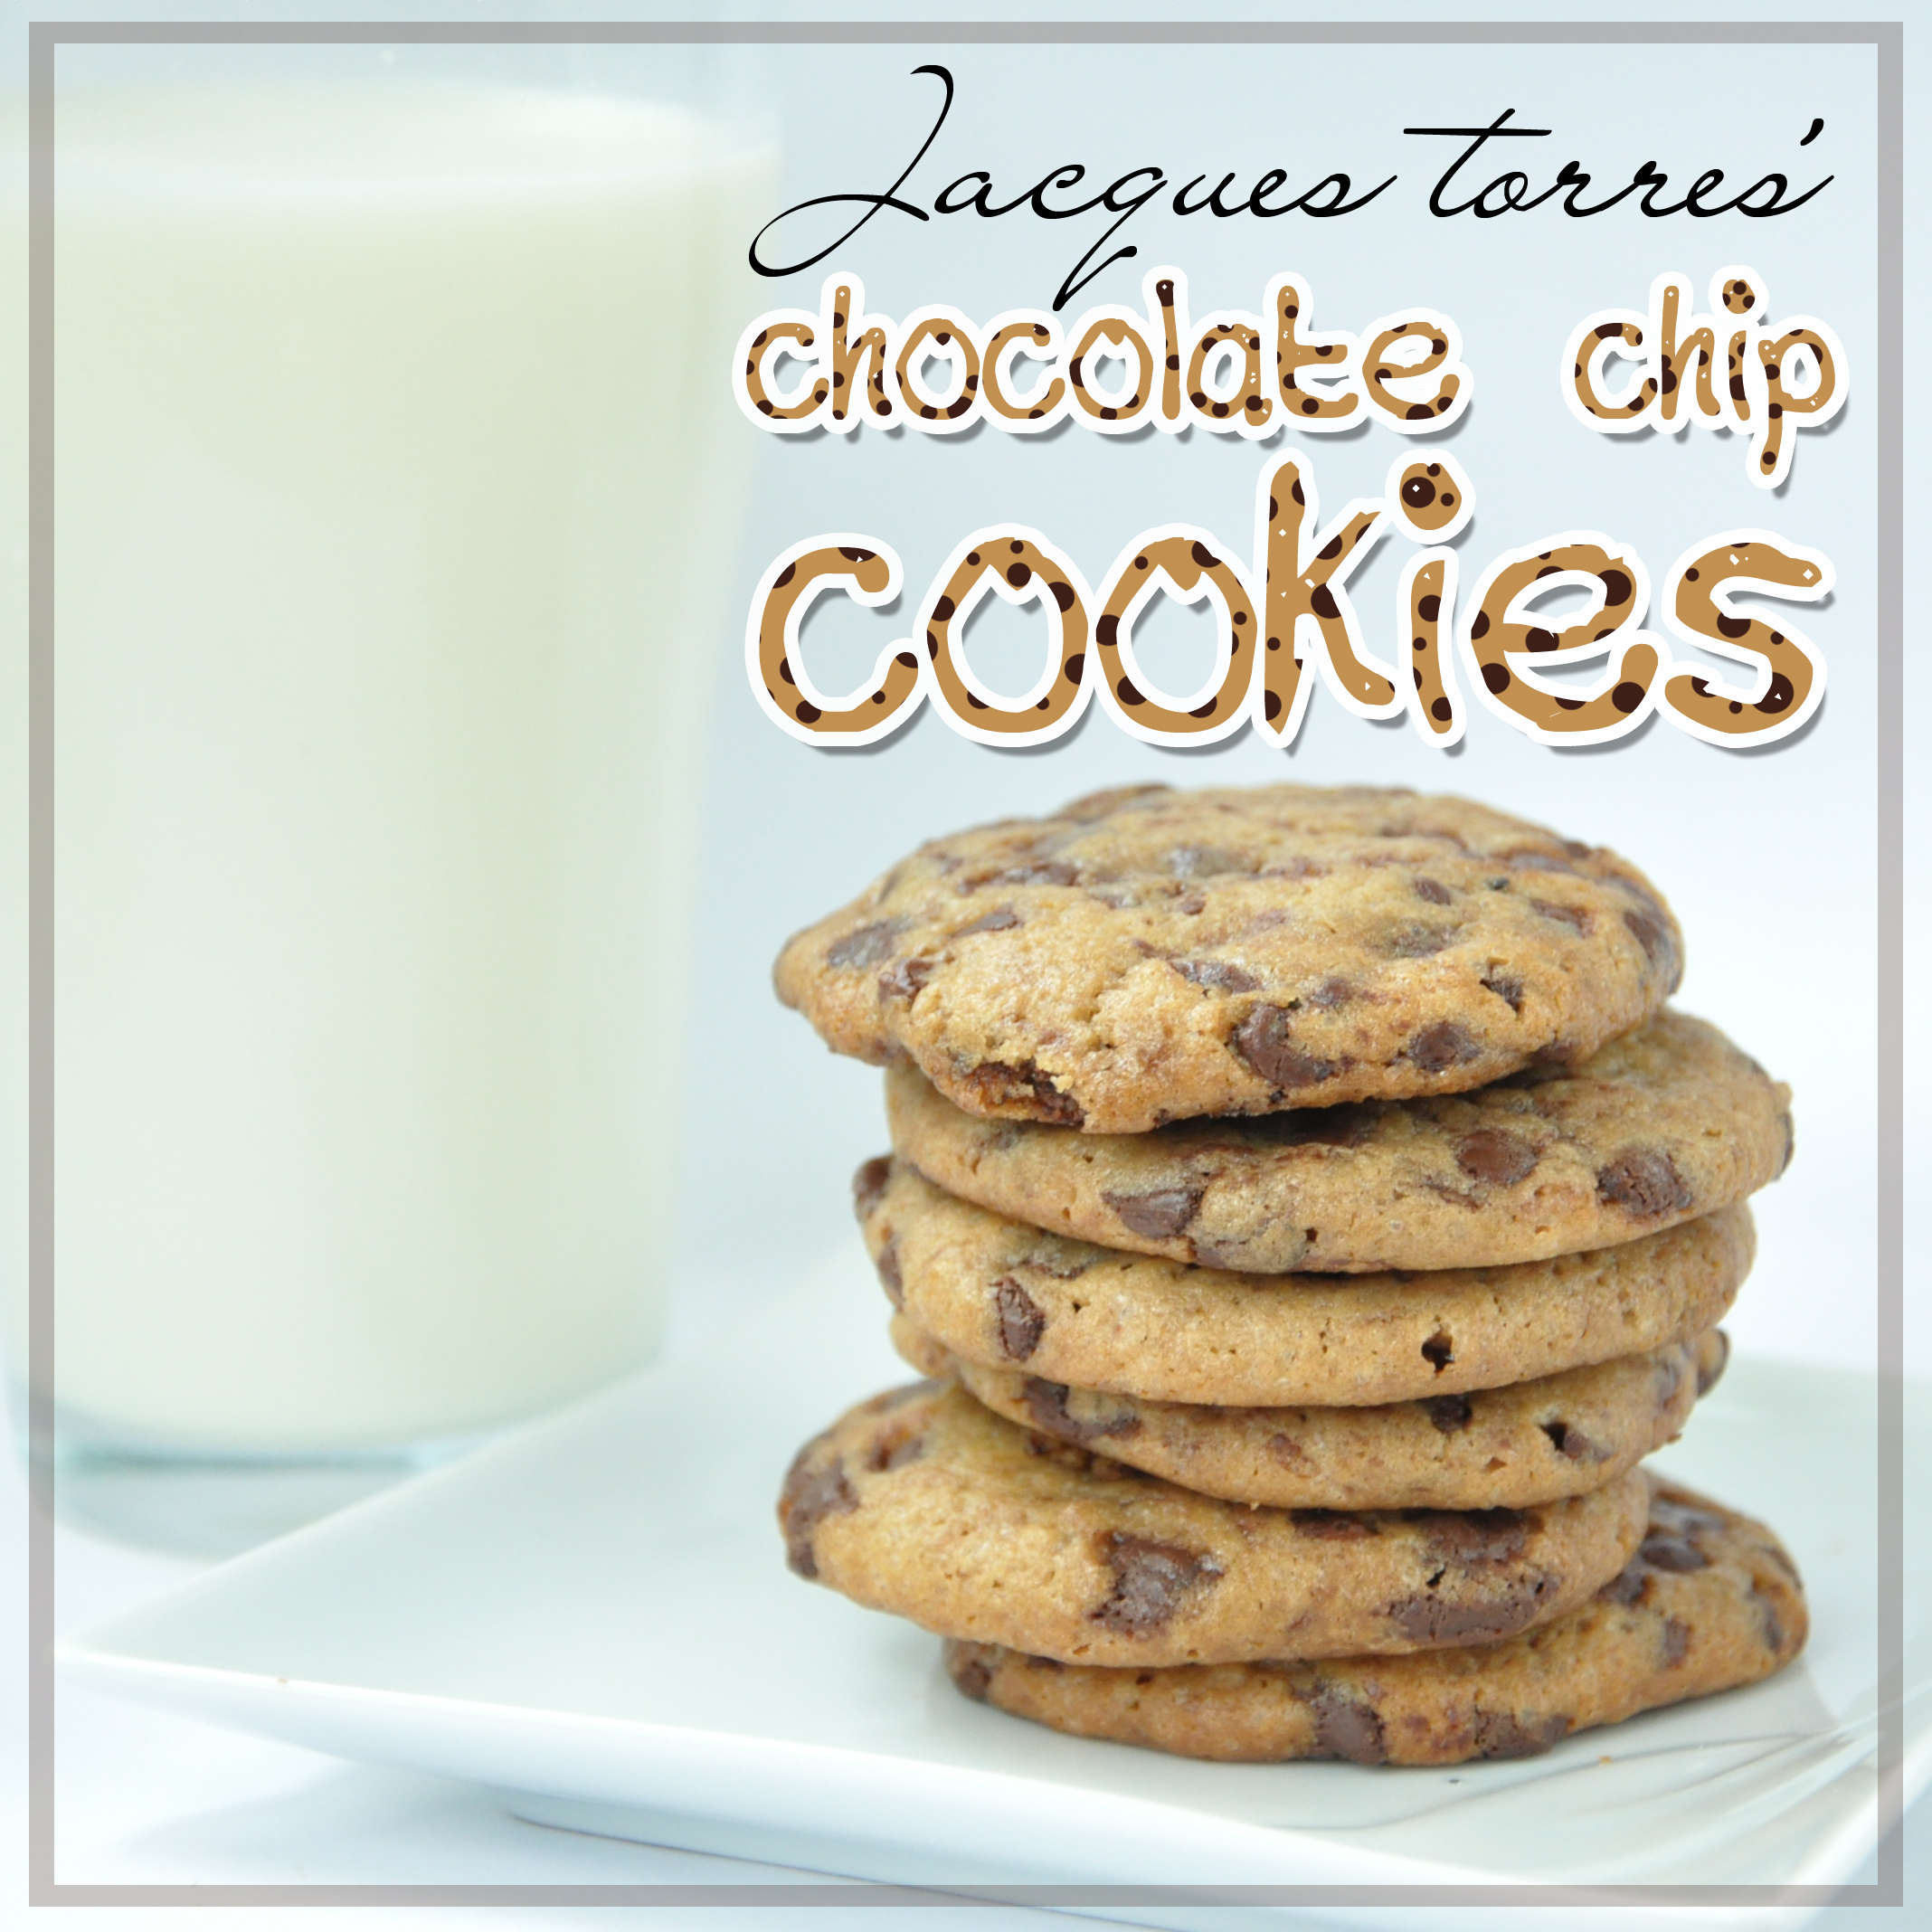 My Take On The Best Chocolate Chip Cookies Ever From Jacques Torres The Only Chocolate